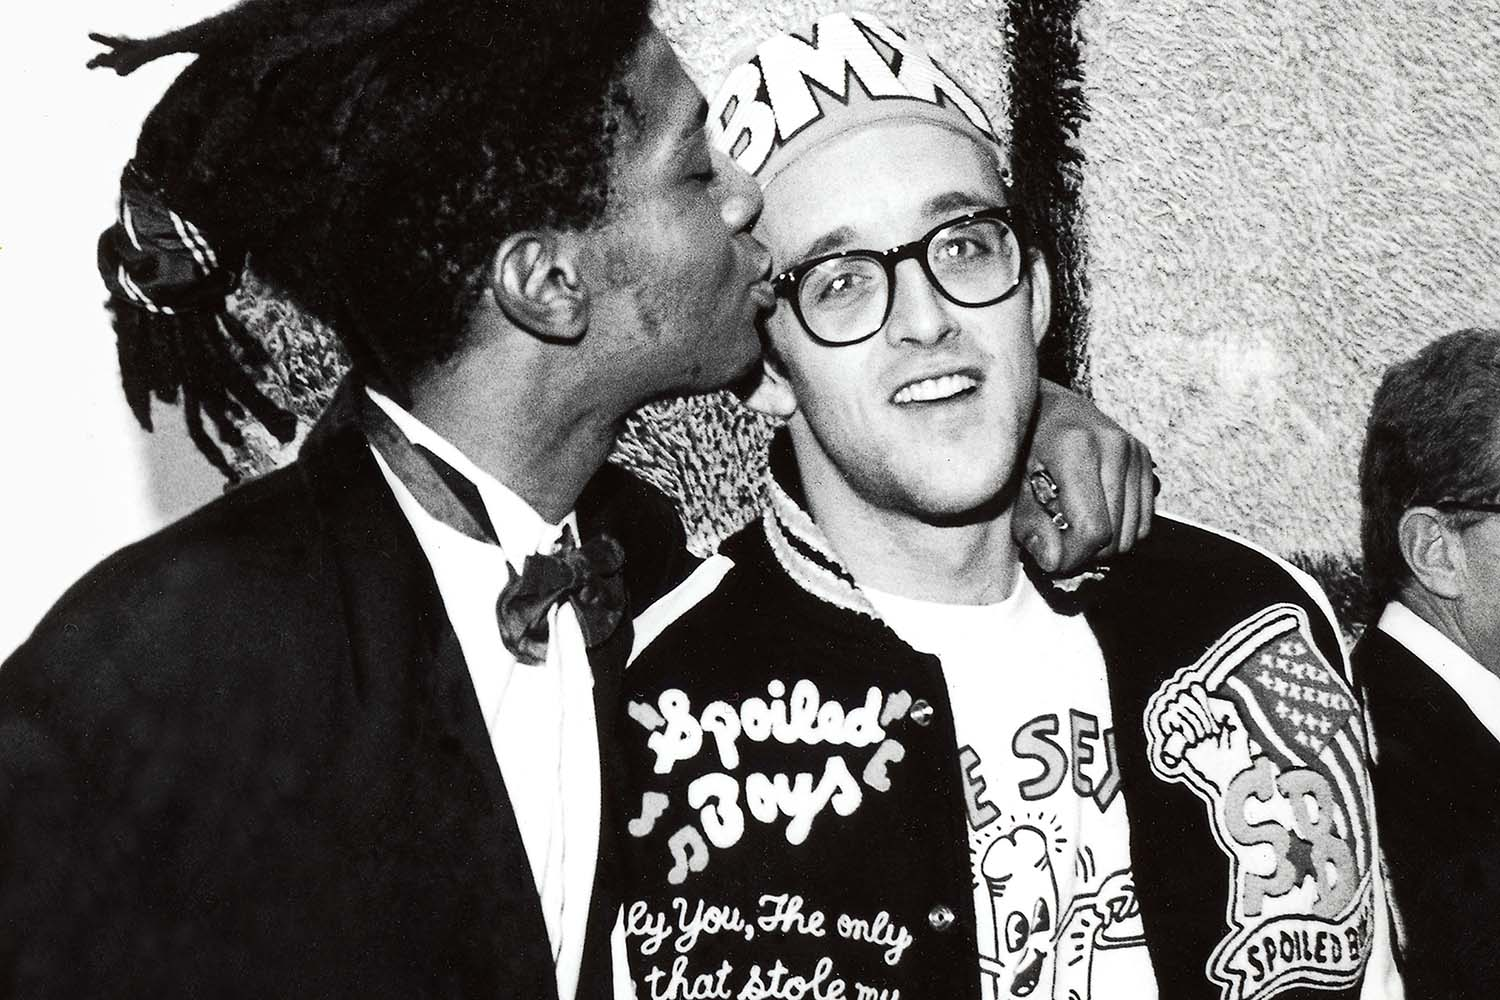 Keith Haring and Jean-Michel Basquiat